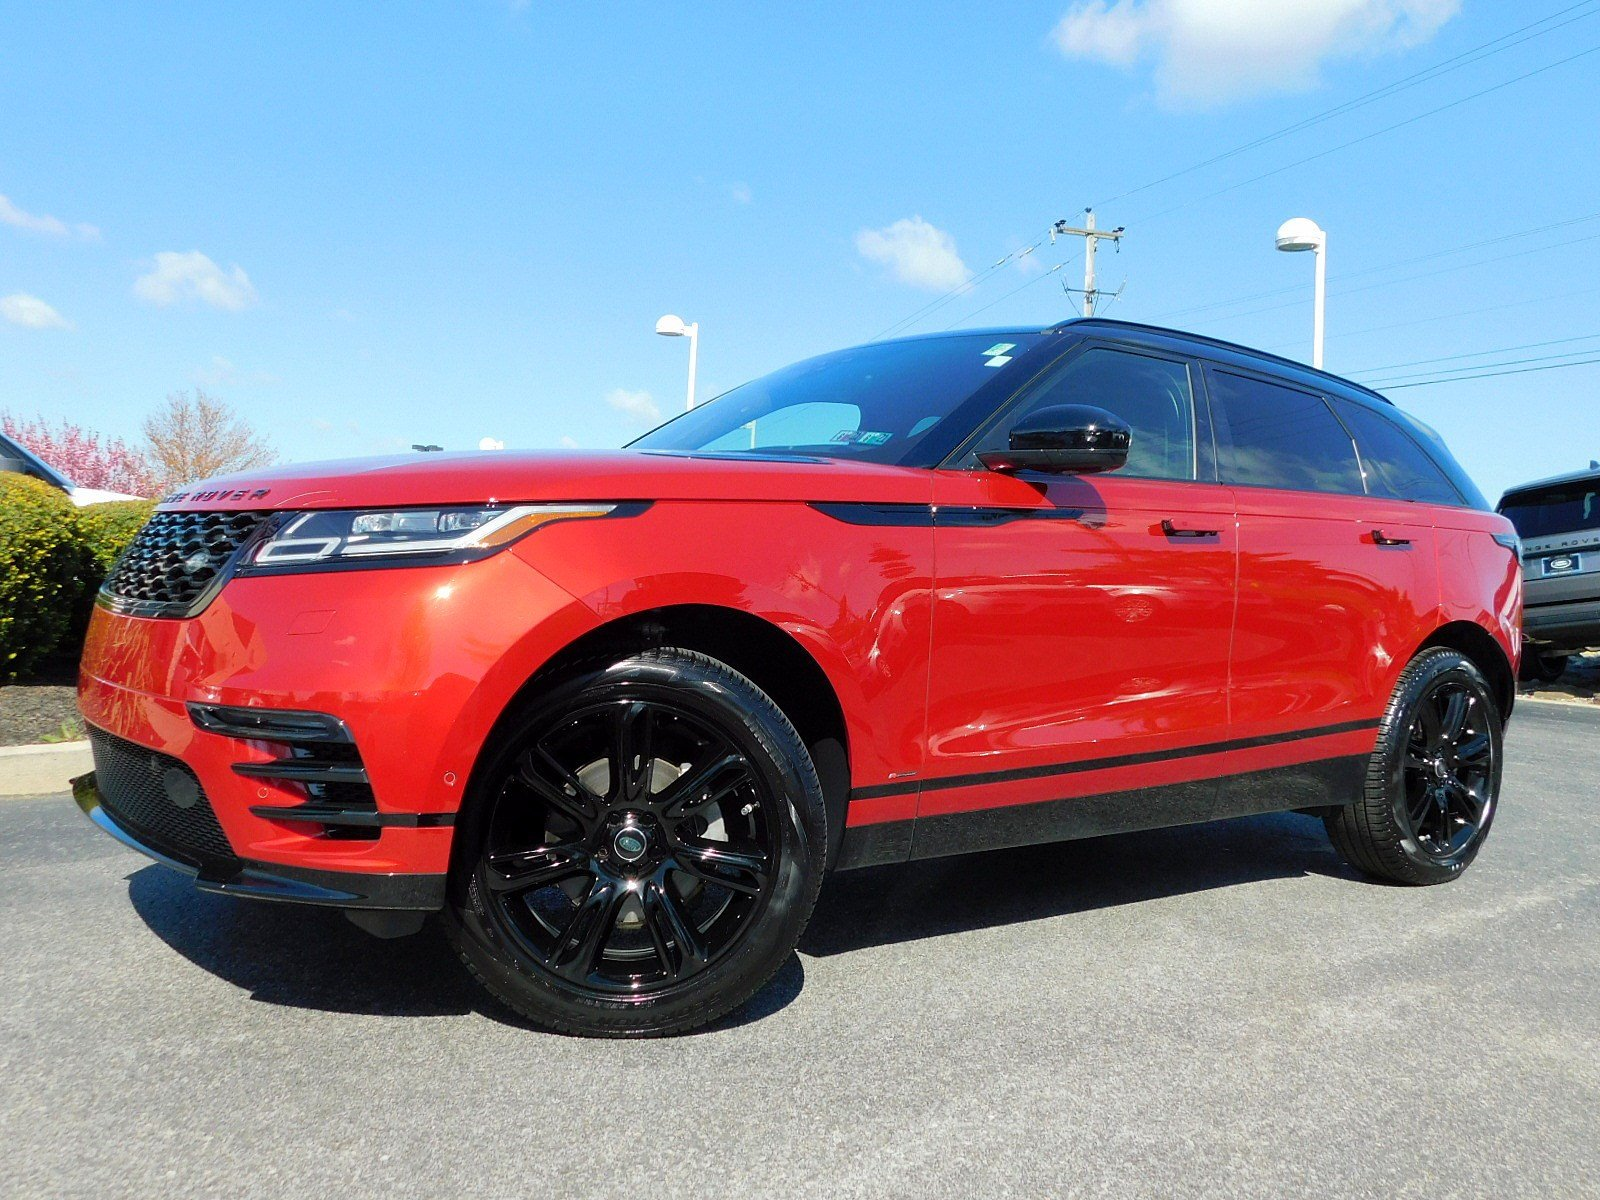 Pre-Owned 2020 Land Rover Range Rover Velar R-Dynamic S With Navigation & 4WD